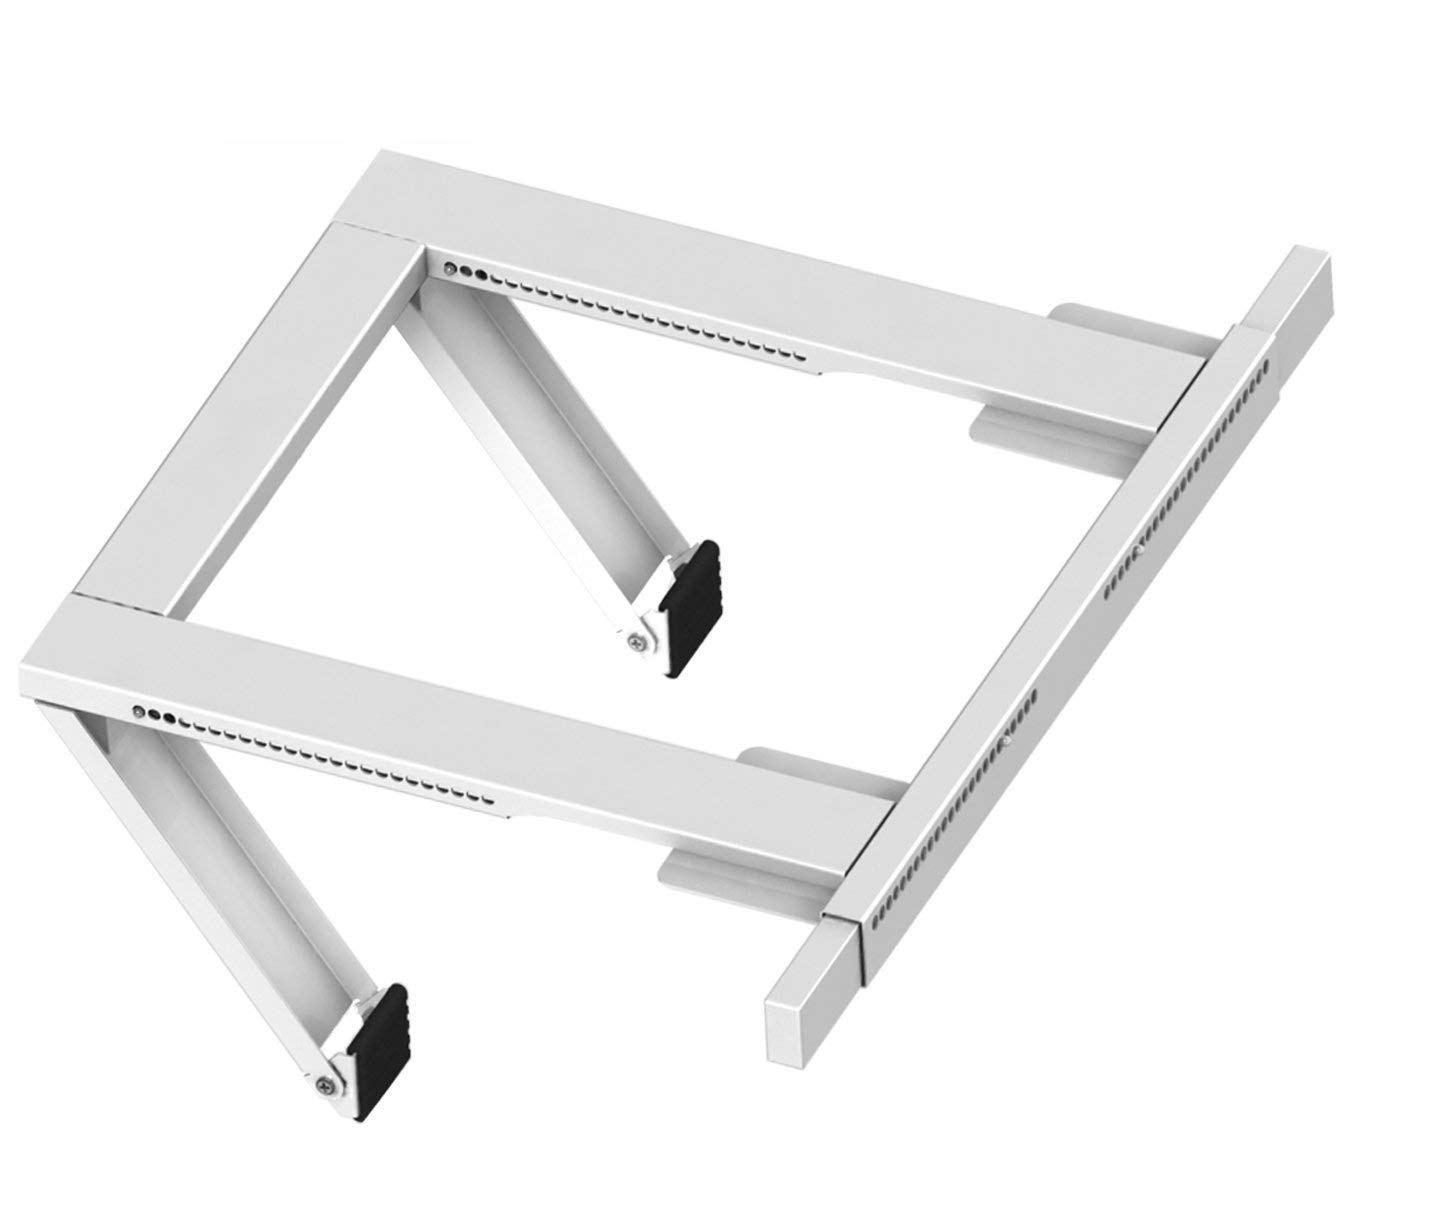 Jeacent AC Window Air Conditioner Support Bracket No Drilling Jeacent Innovations